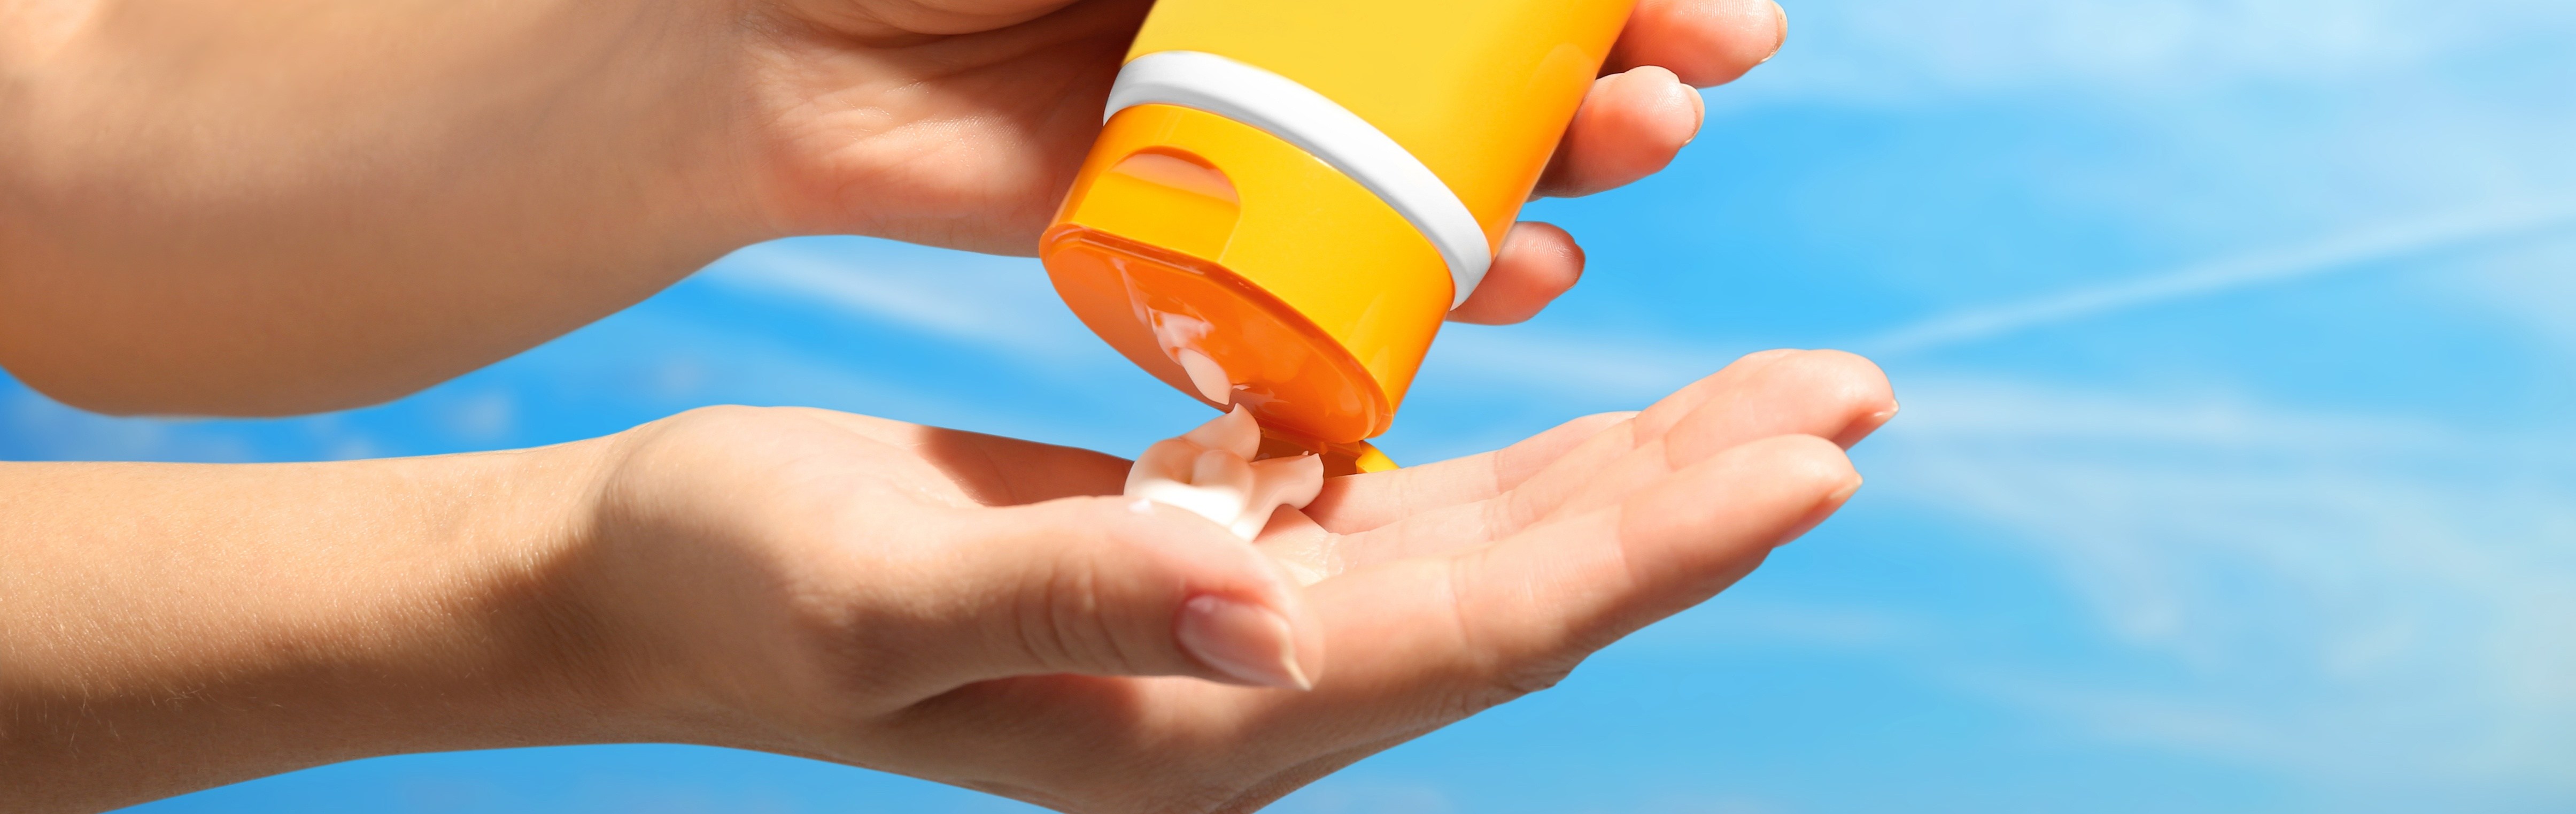 What's the Difference Between Sunscreen and Sunblock? Does it Matter?